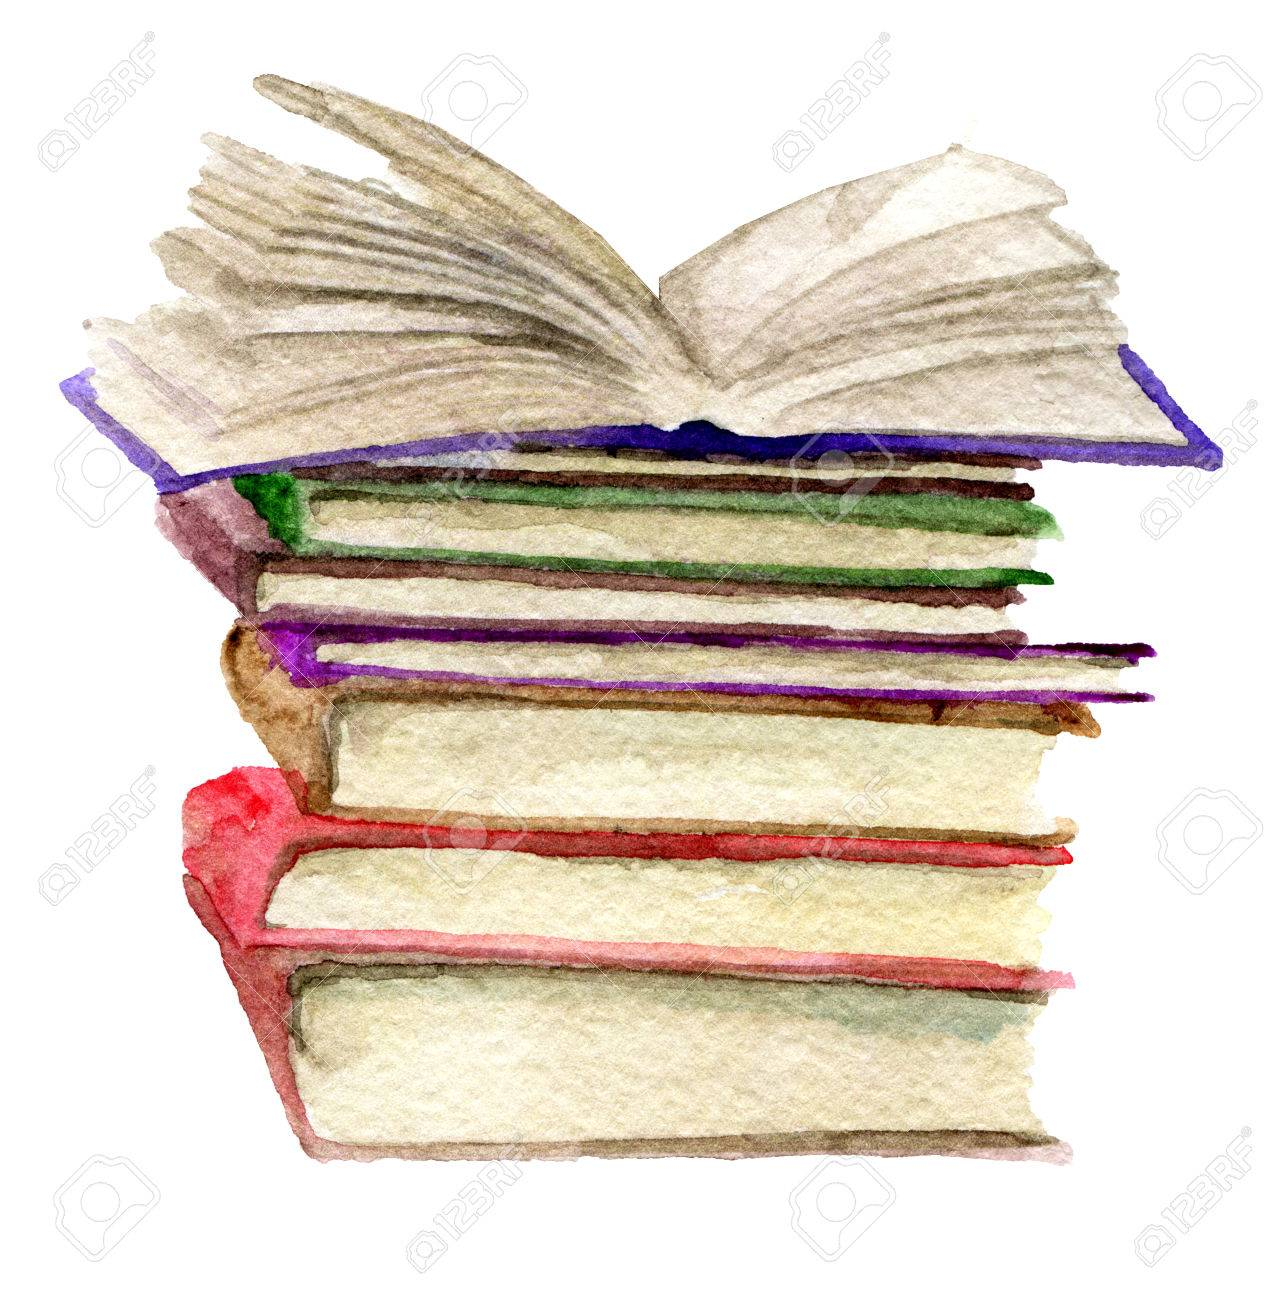 Watercolor Sketch Of Stack Of Books Isolated On White Background ...